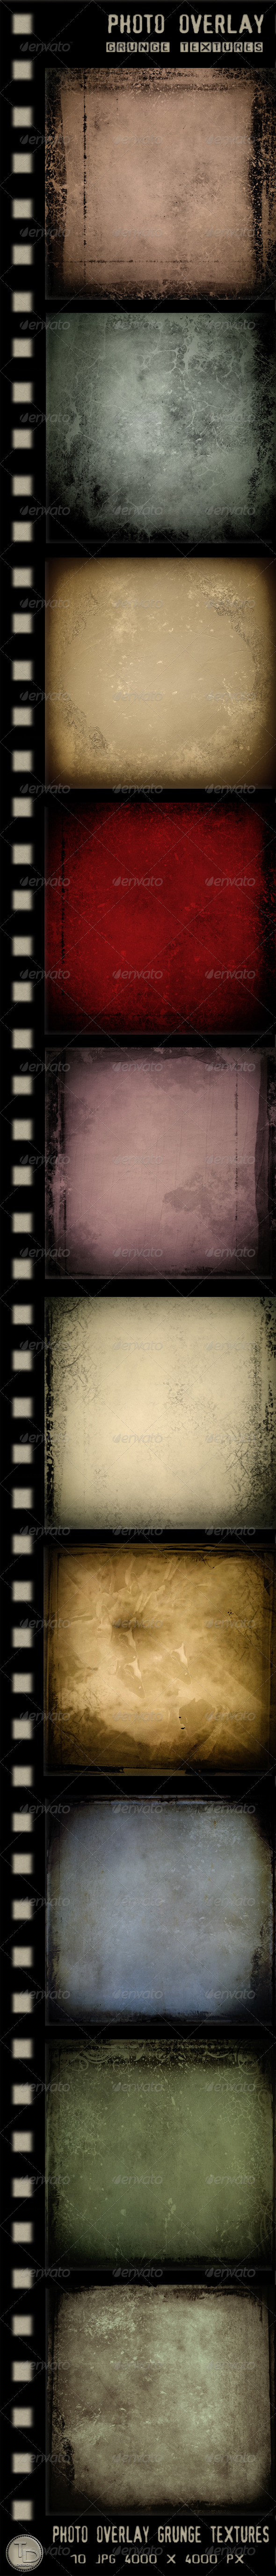 GraphicRiver Photo Overlay Grunge Textures 2798664